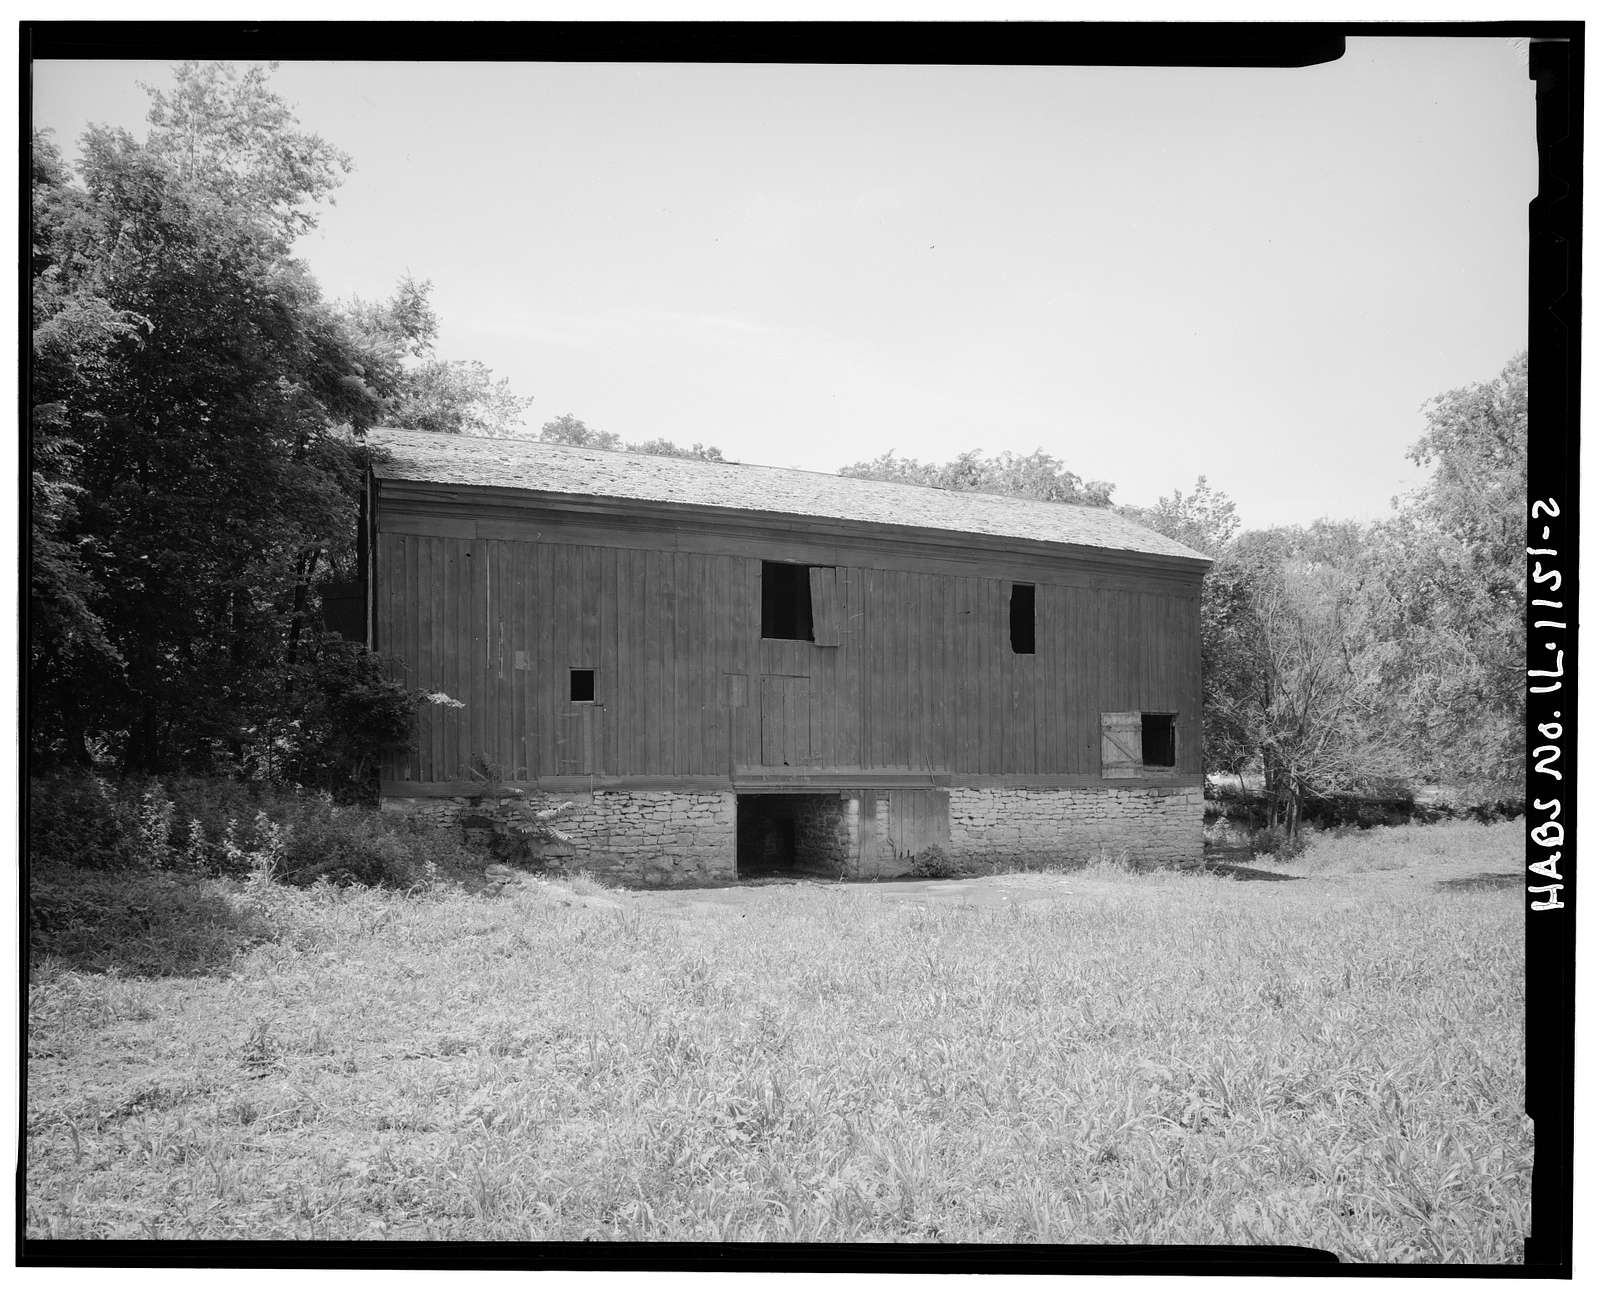 Rutherford Barn, East Hansel Road, Minooka, Grundy County, IL